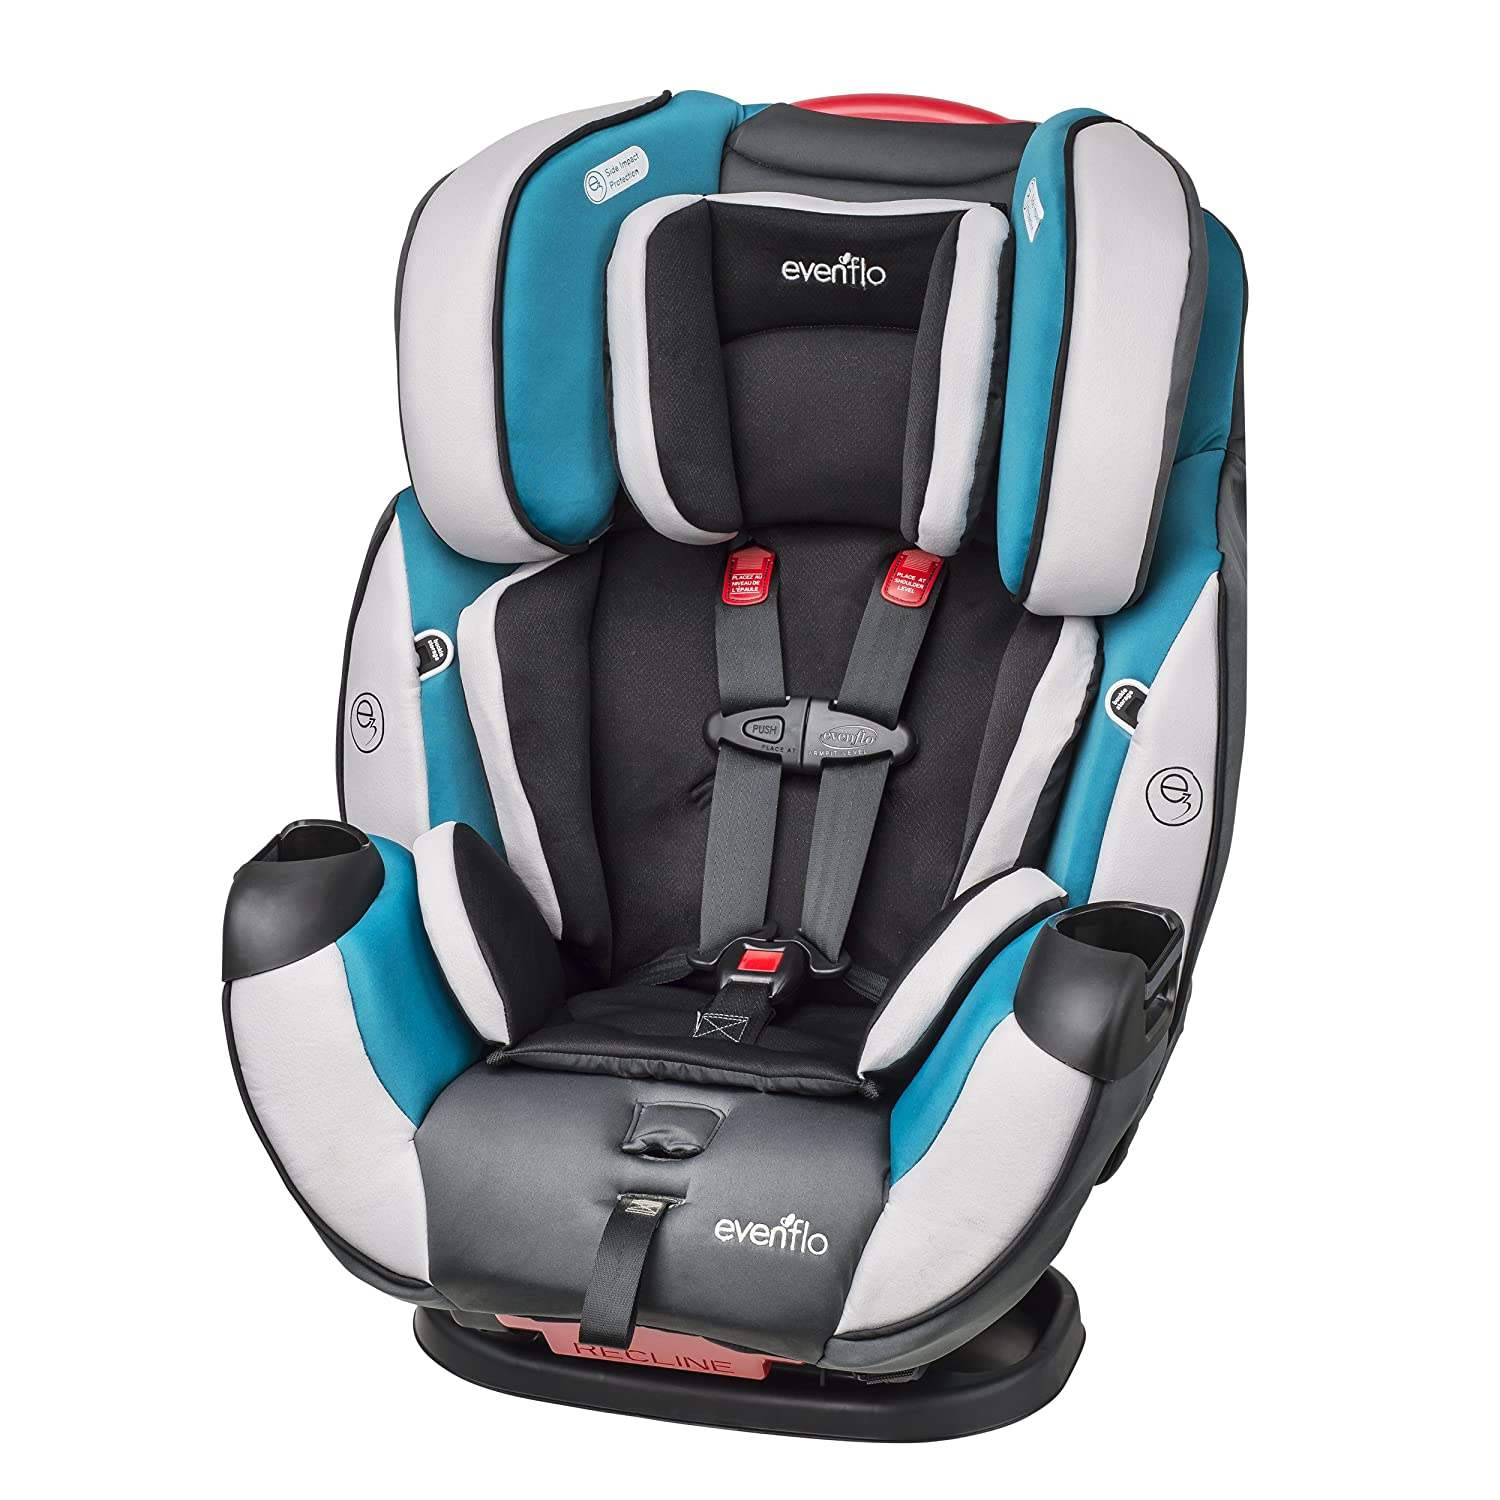 Top 5 Best Affordable Convertible Car Seats Reviews in 2020 1